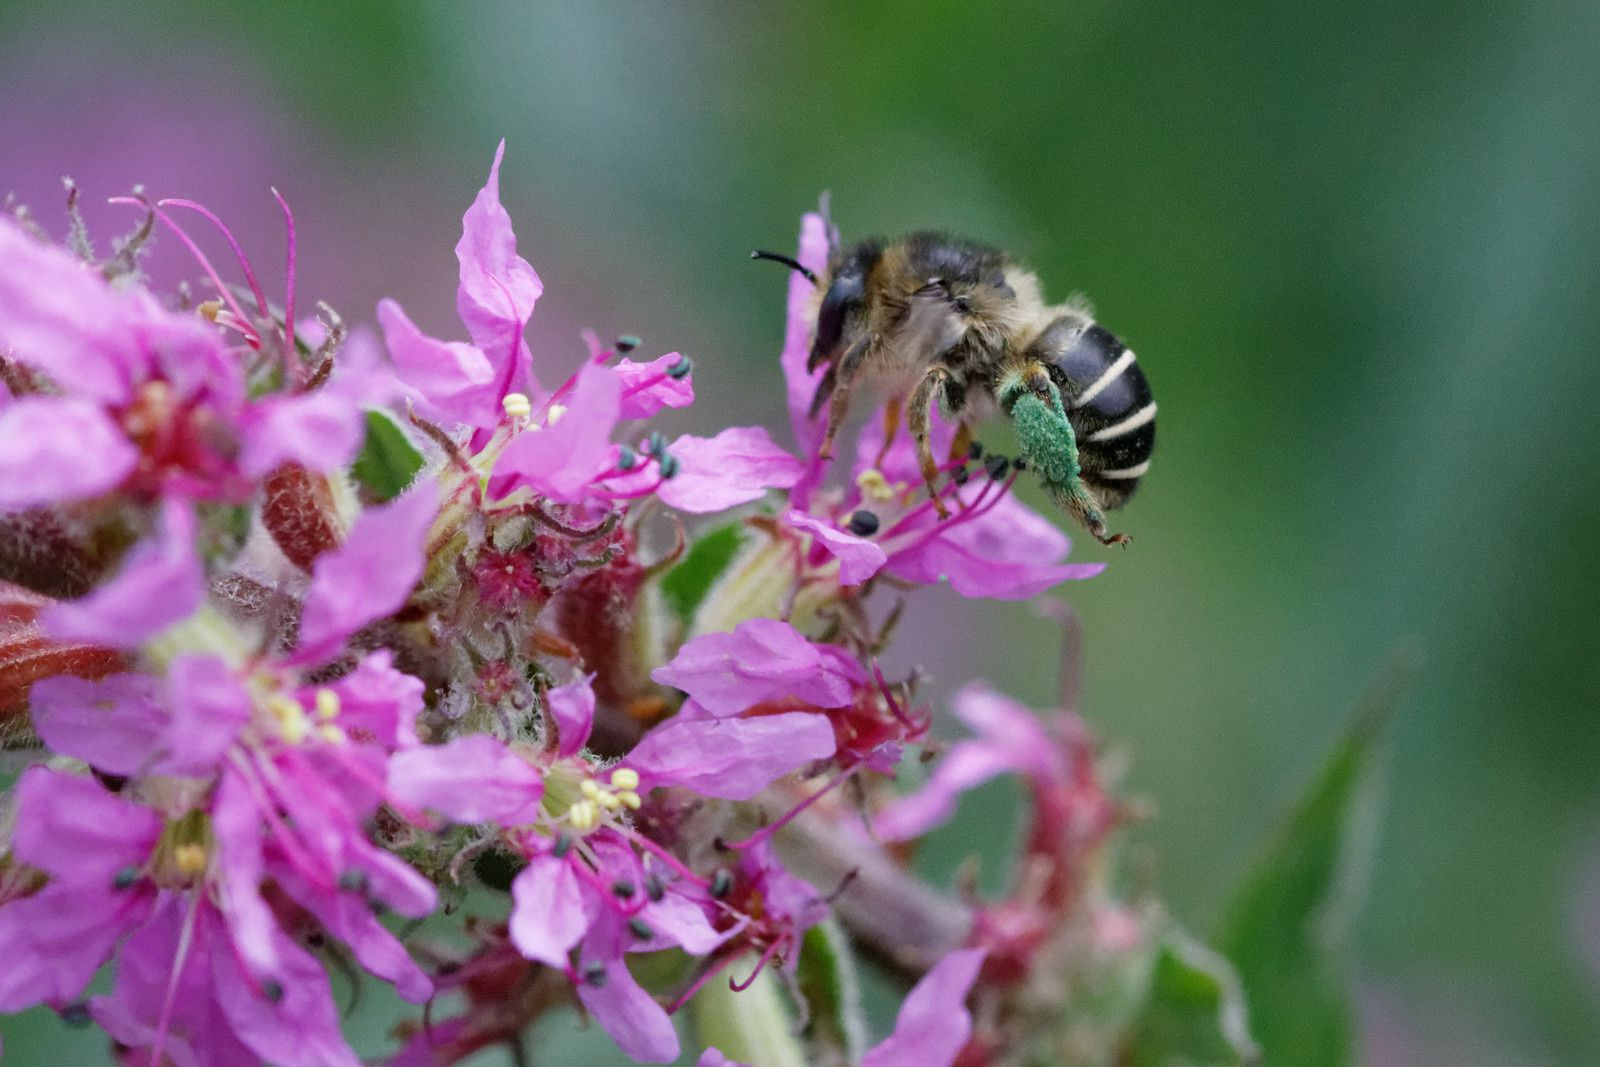 Abeille solitaire - Anthophora sp